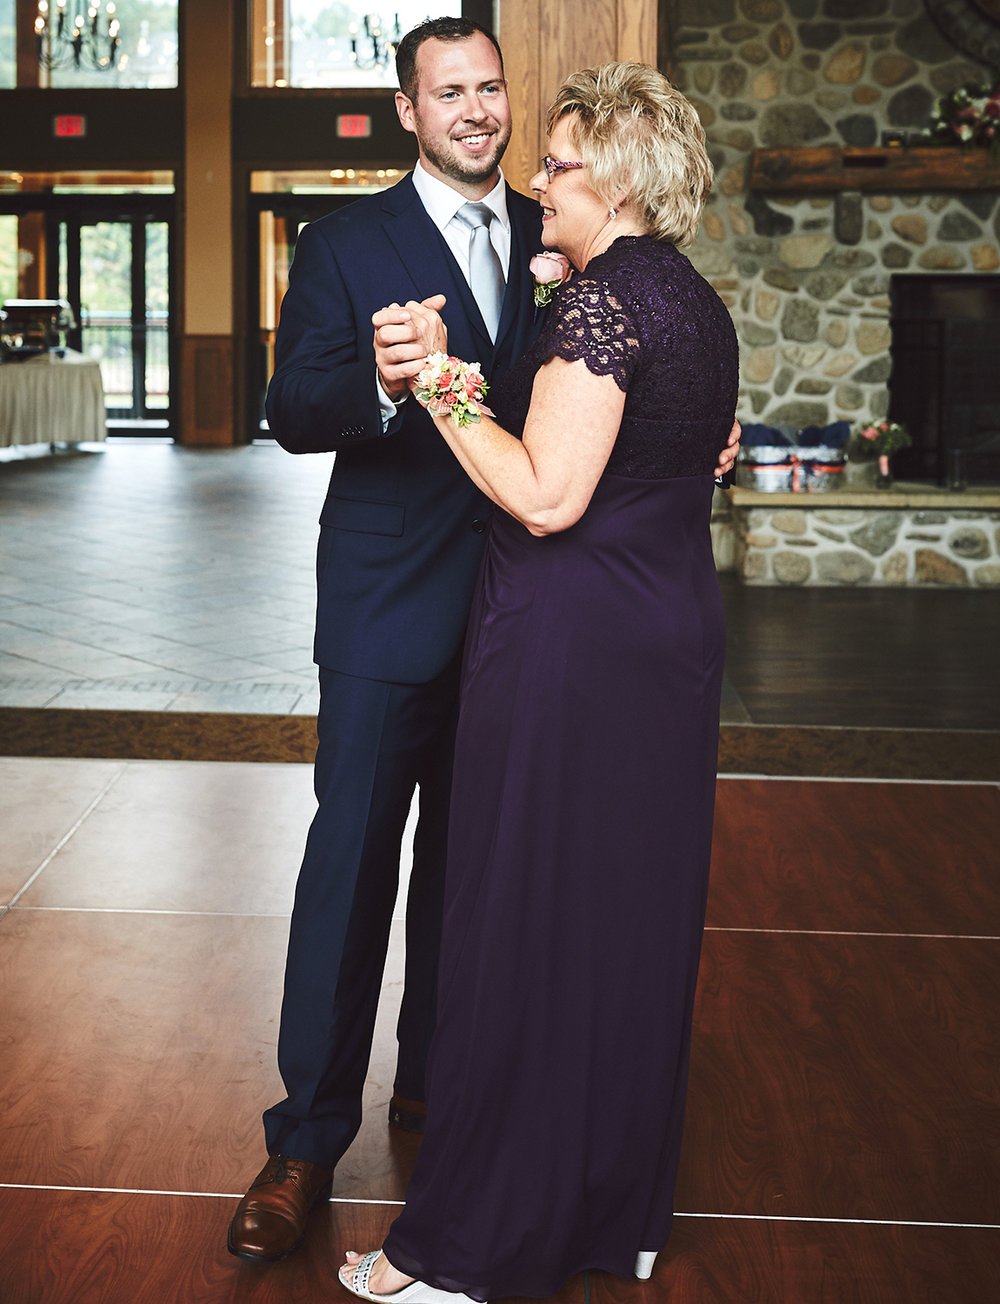 180714_HolidayValleyLodgeWeddingPhotography_By_BriJohnsonWeddings_0140.jpg